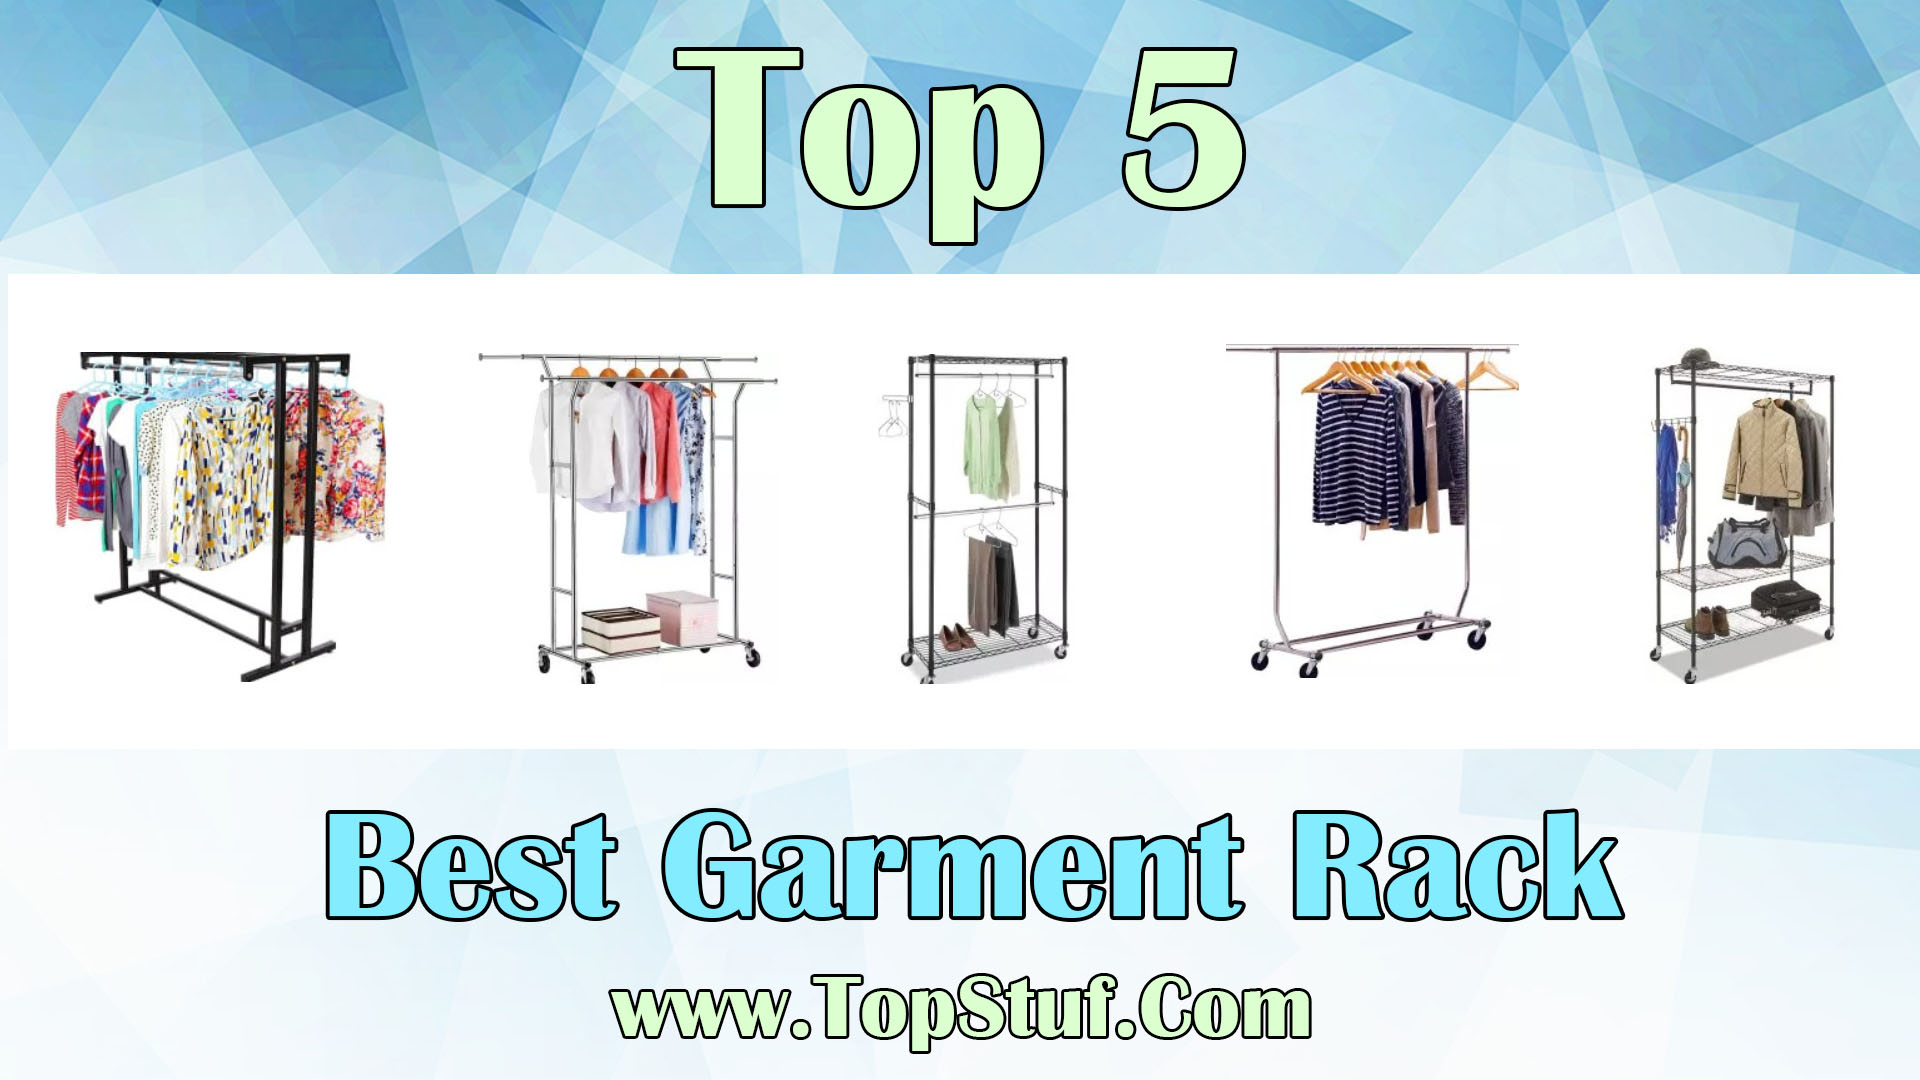 Best Garment Rack